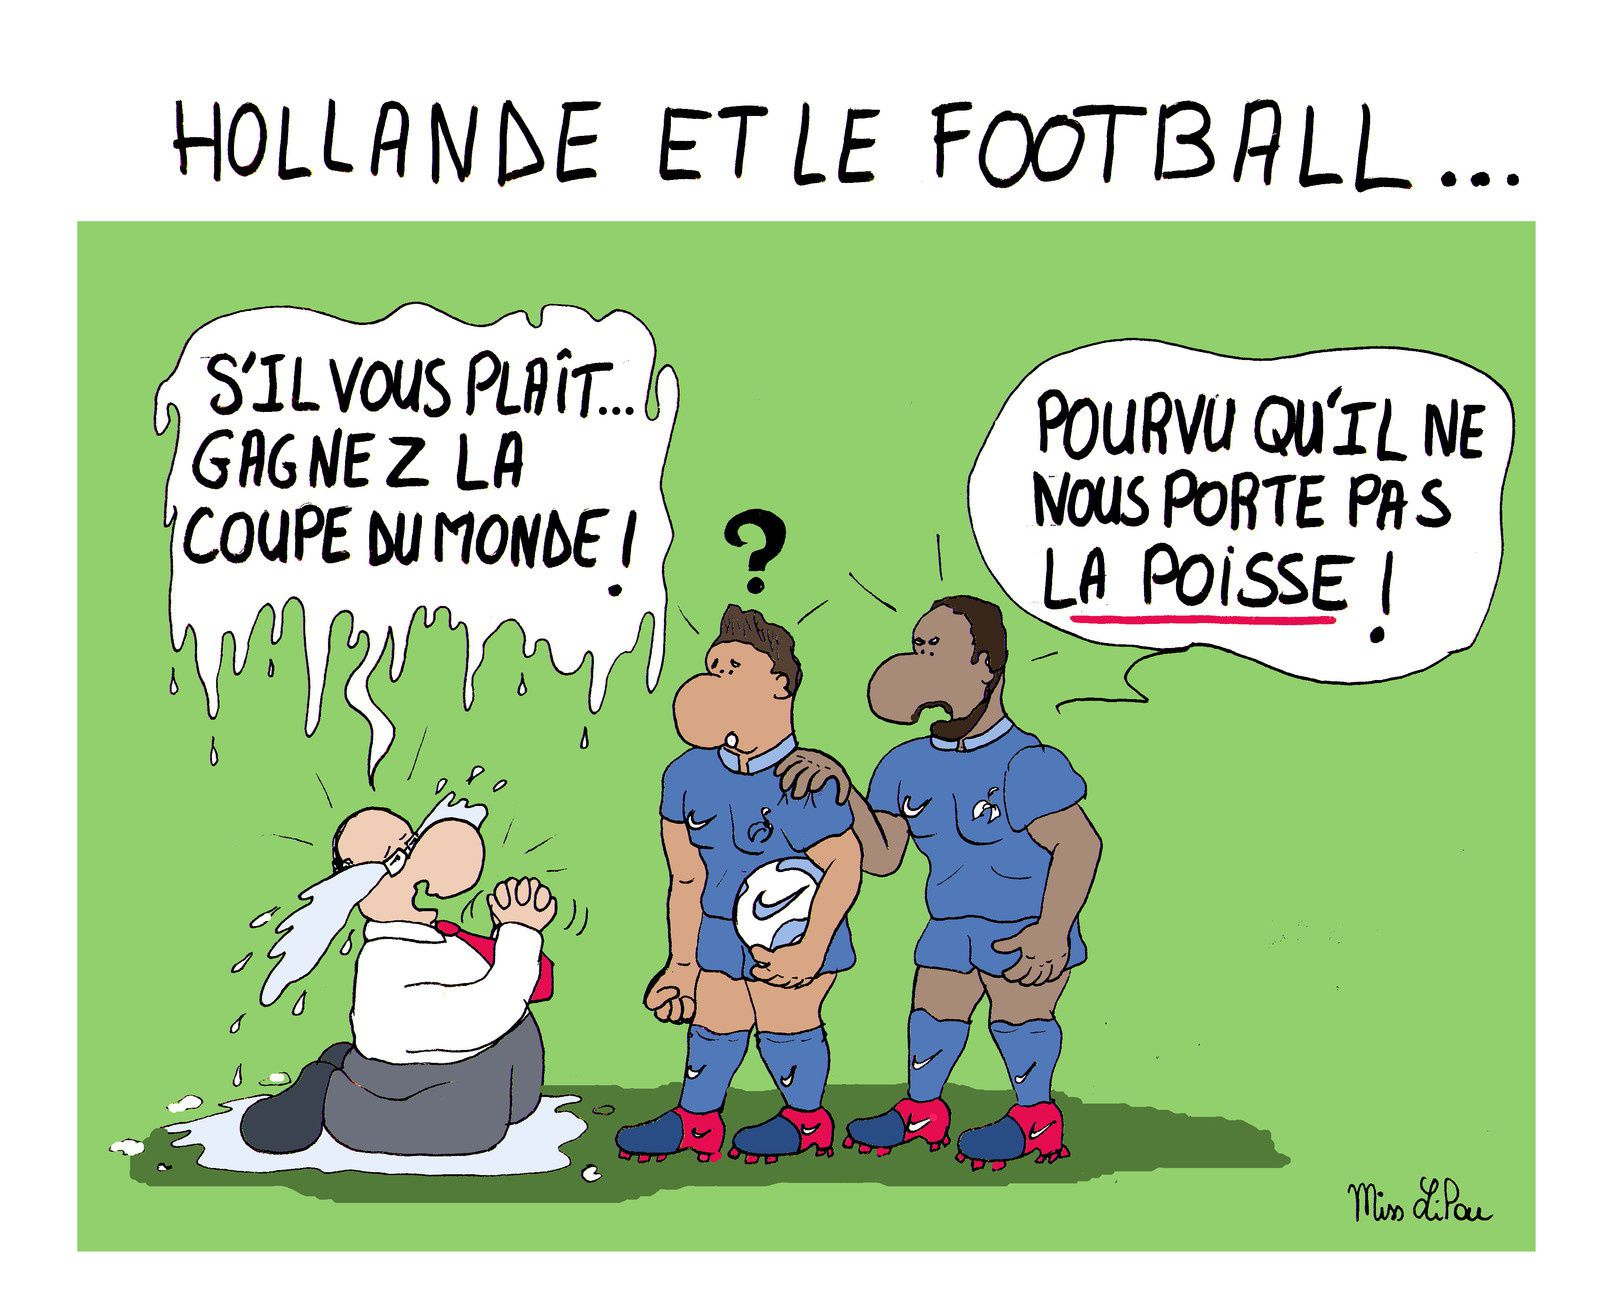 François Hollande Et Le Football Dessins Miss Lilou